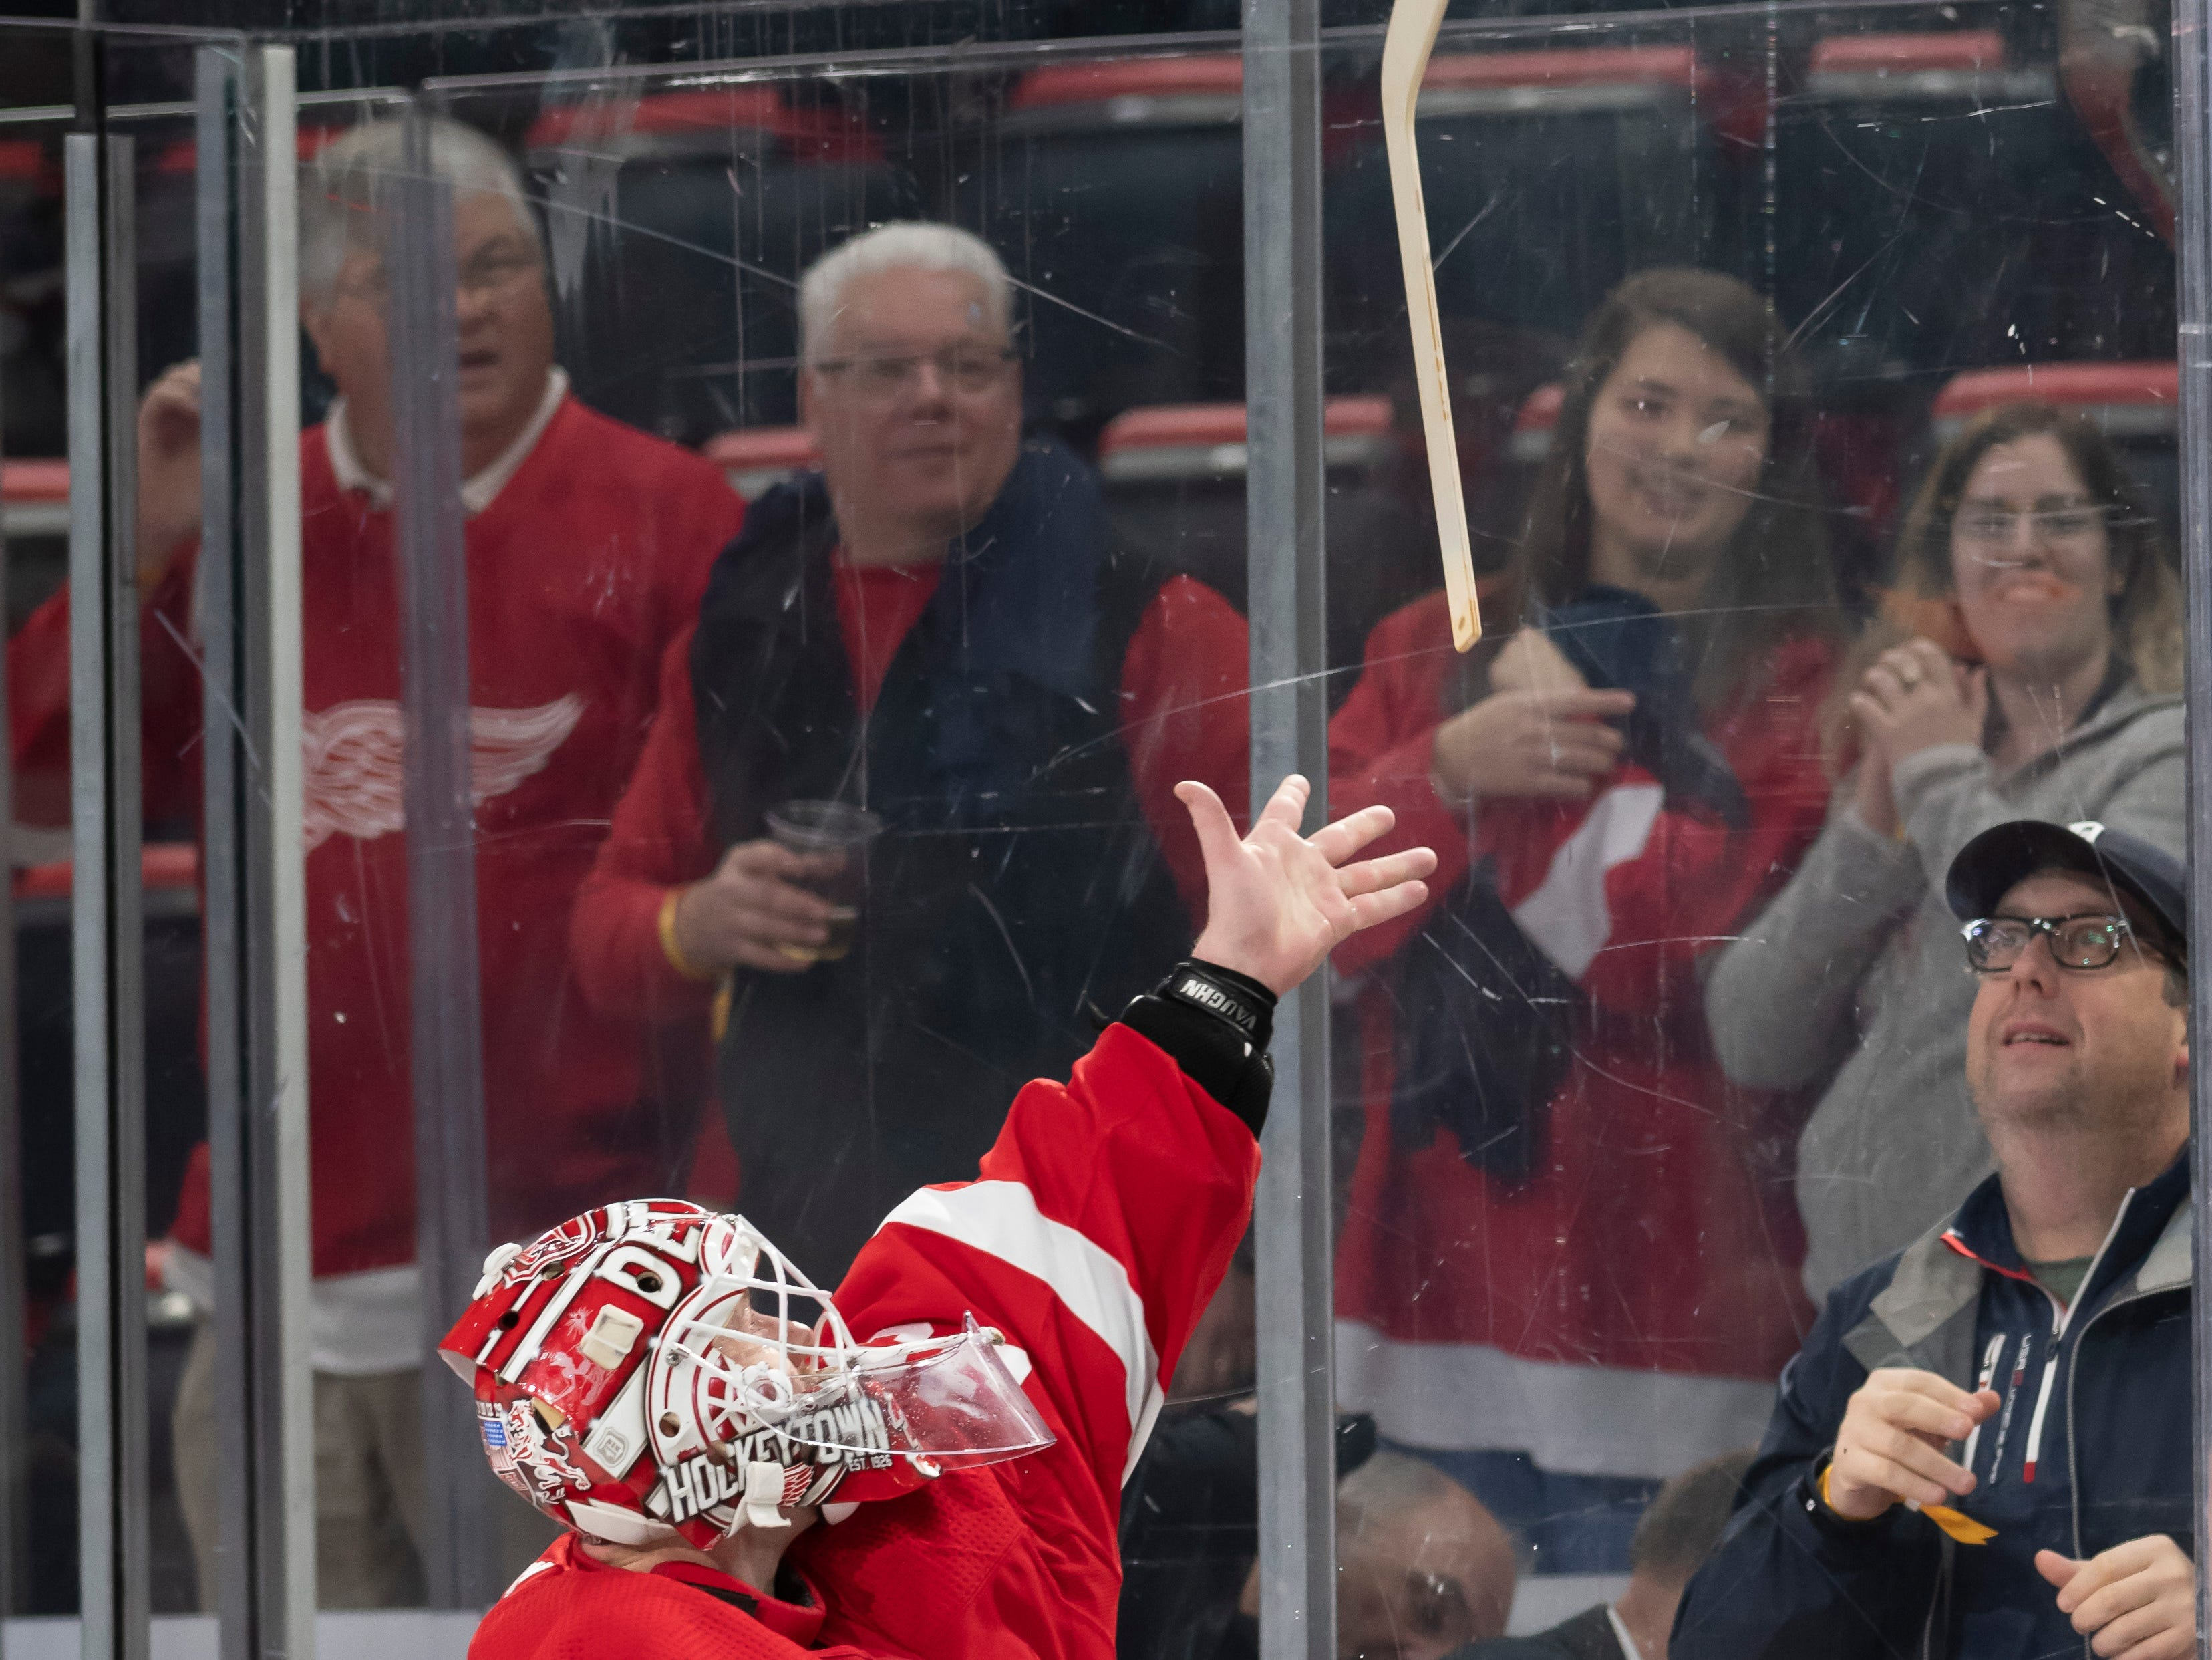 Detroit goaltender Jimmy Howard throws a stick to a fan after the game.